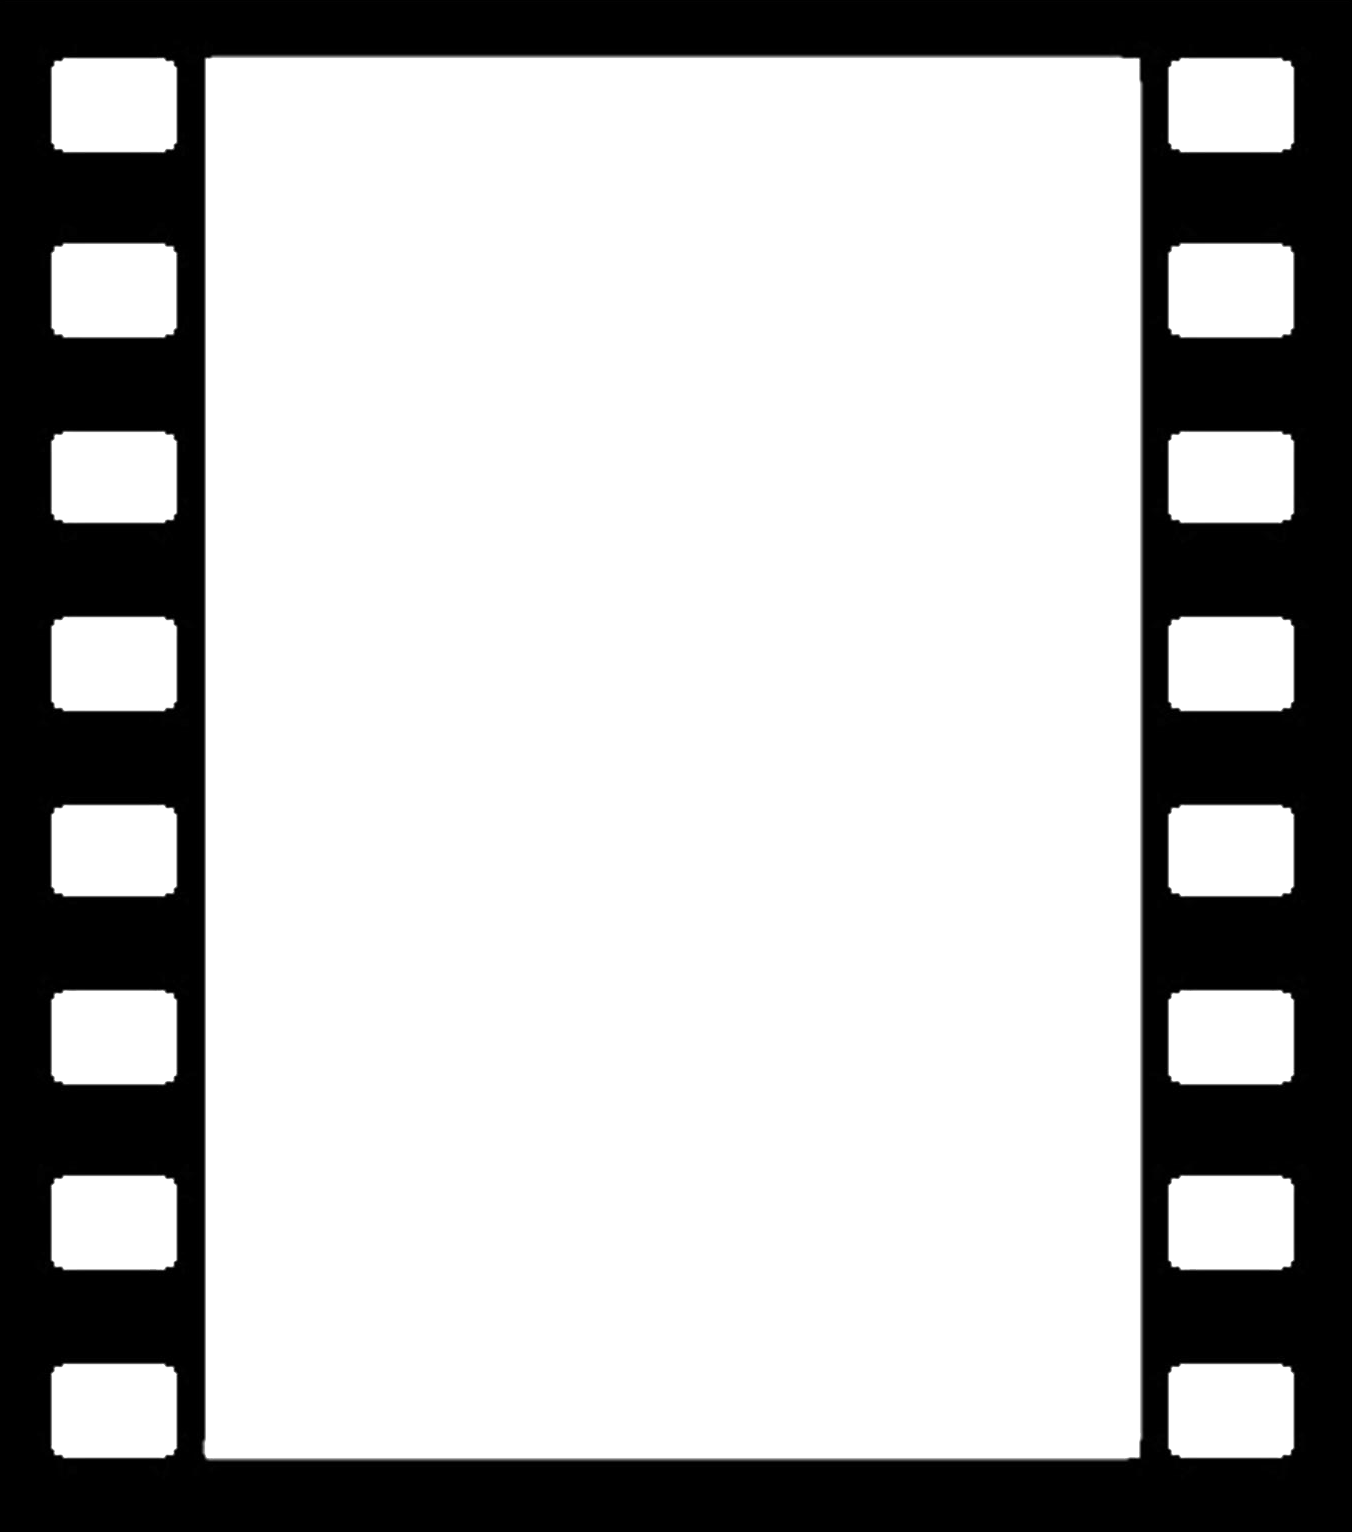 hight resolution of film strip filmstrip free stock photo a blank filmstrip clipart